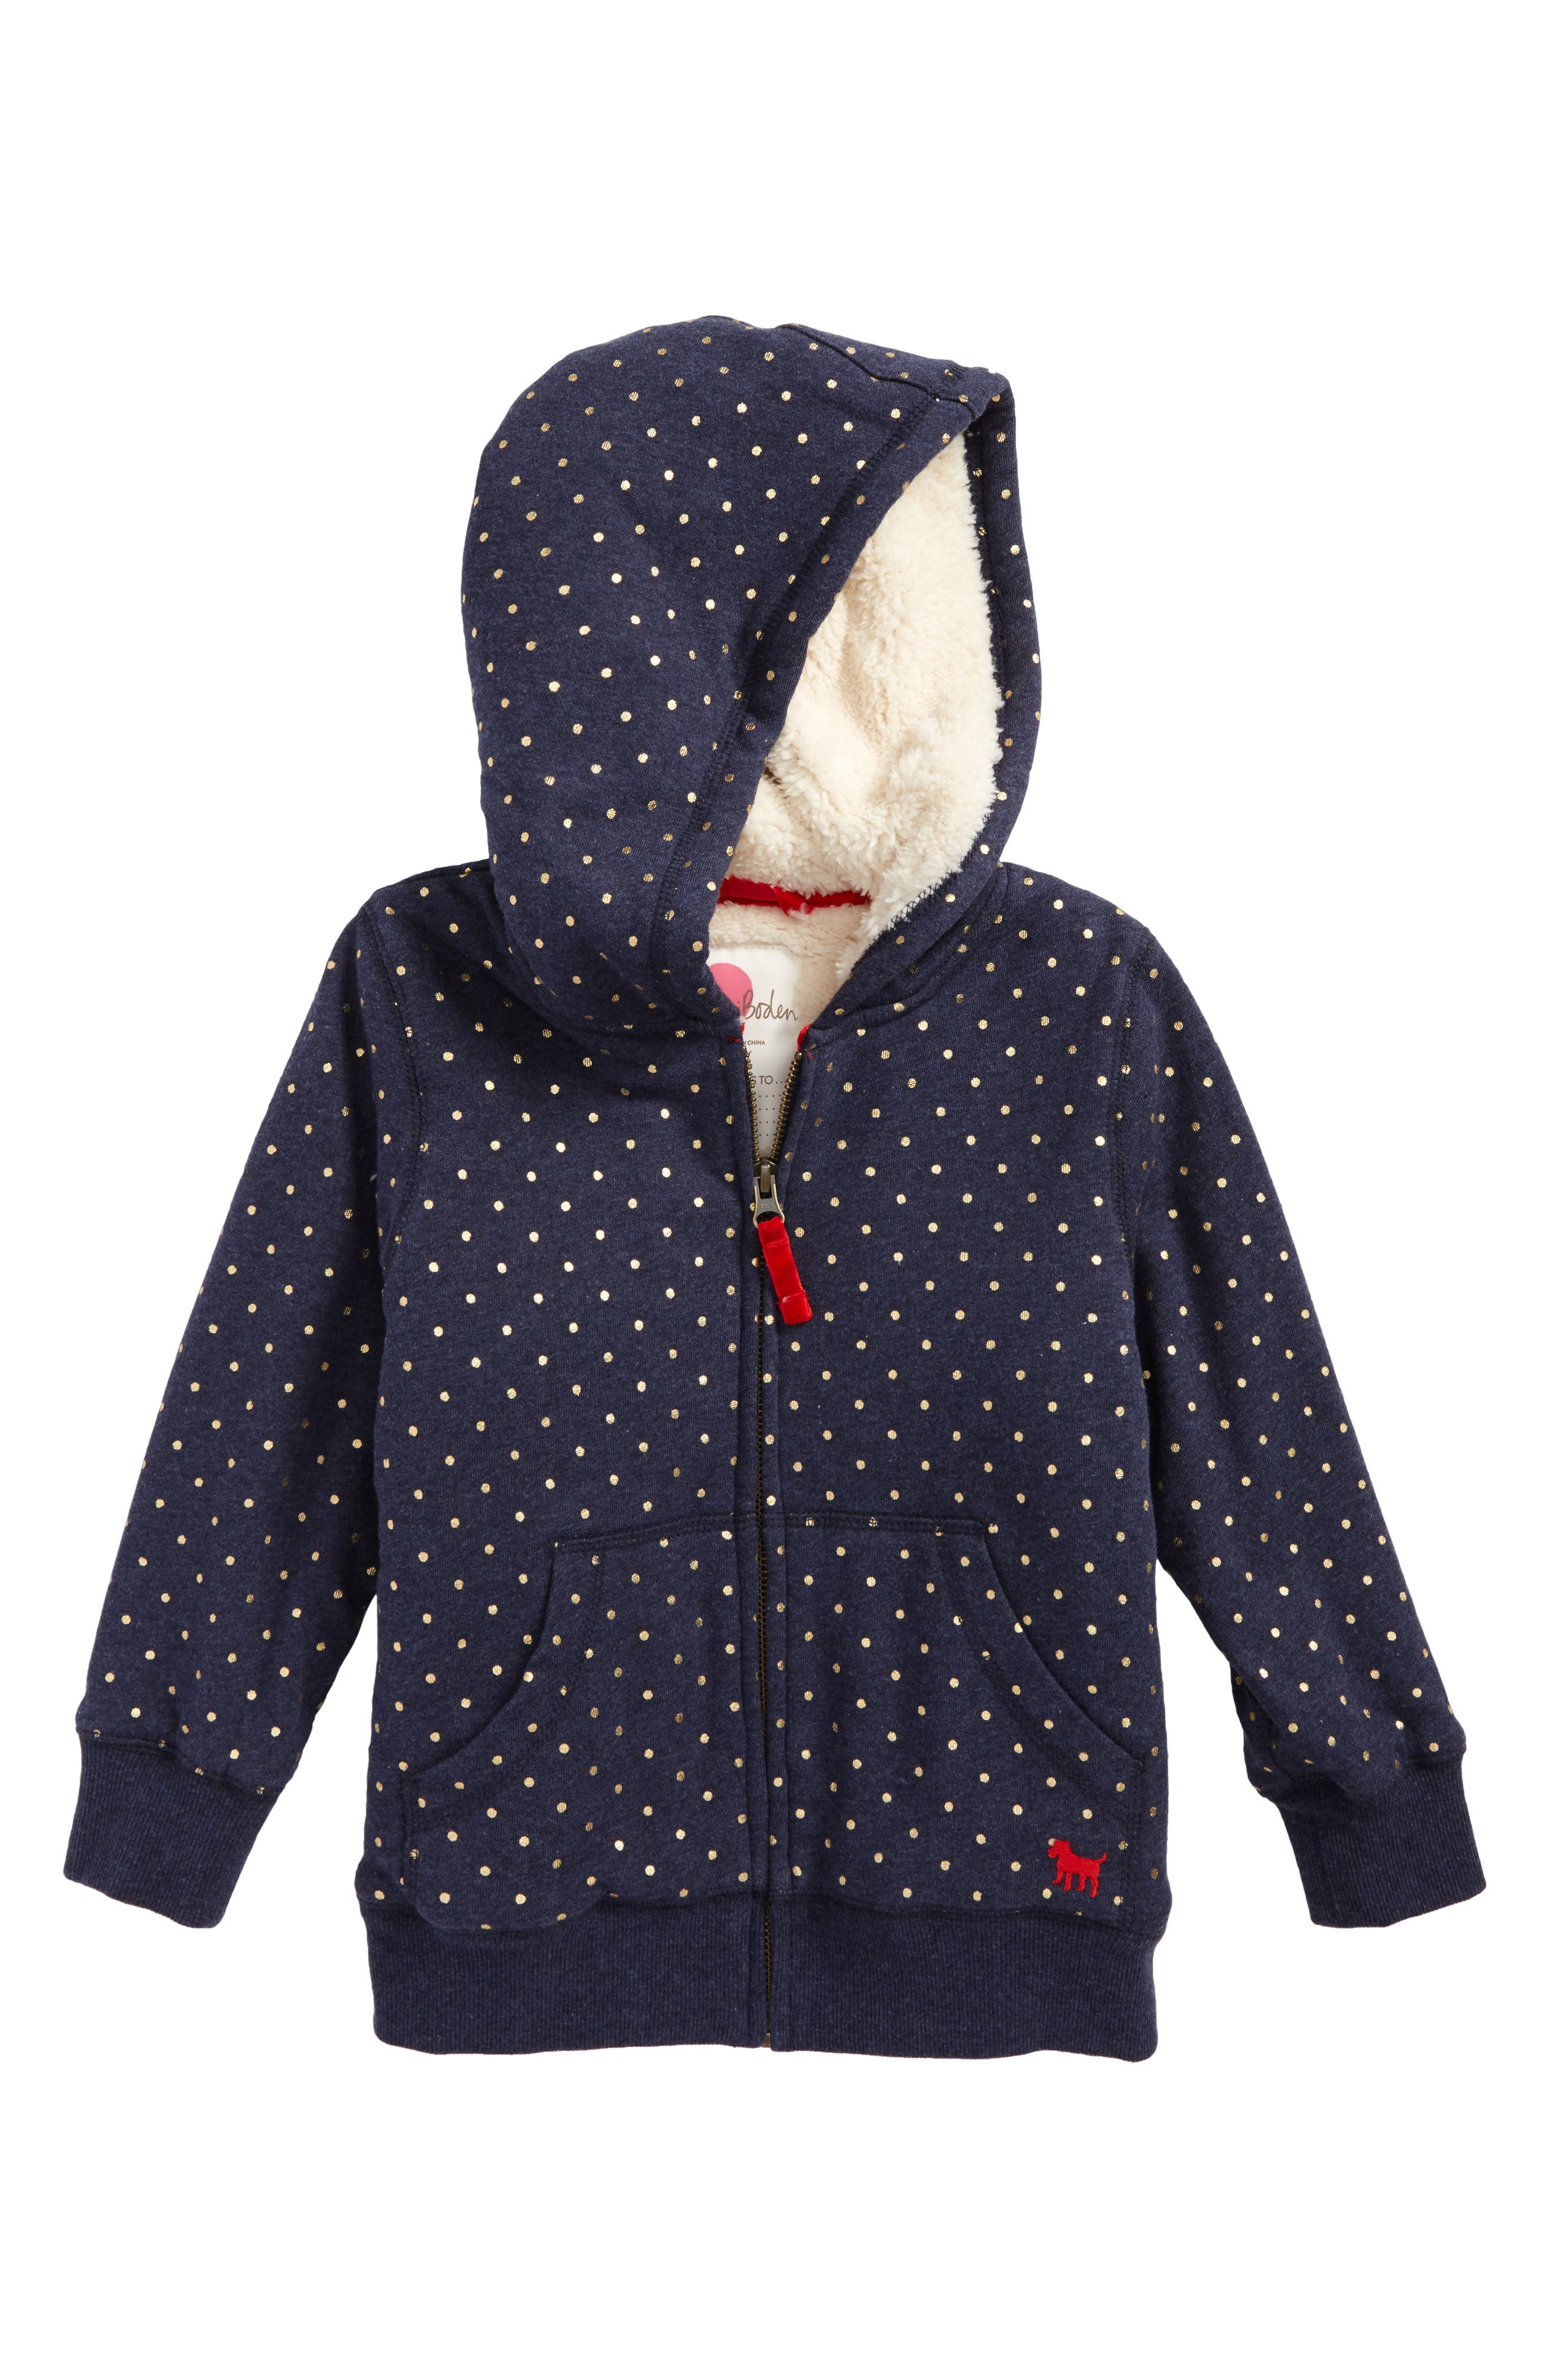 Boden Print Shaggy Lined Hoodie,                         Main,                         color,